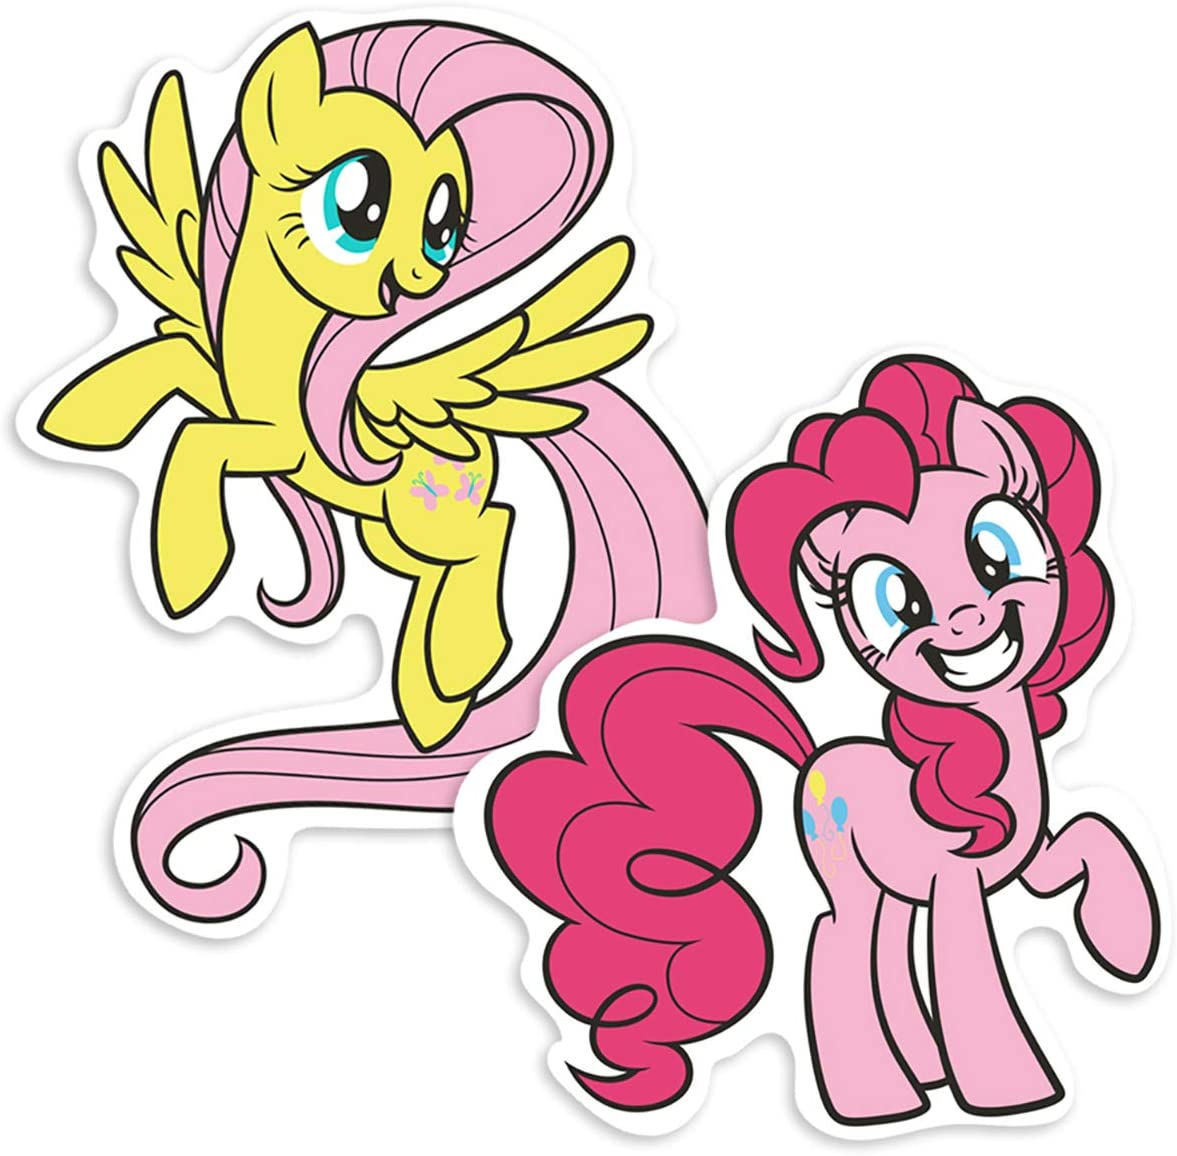 Popfunk My Little Pony Fluttershy and Pinkie Pie Collectible Stickers